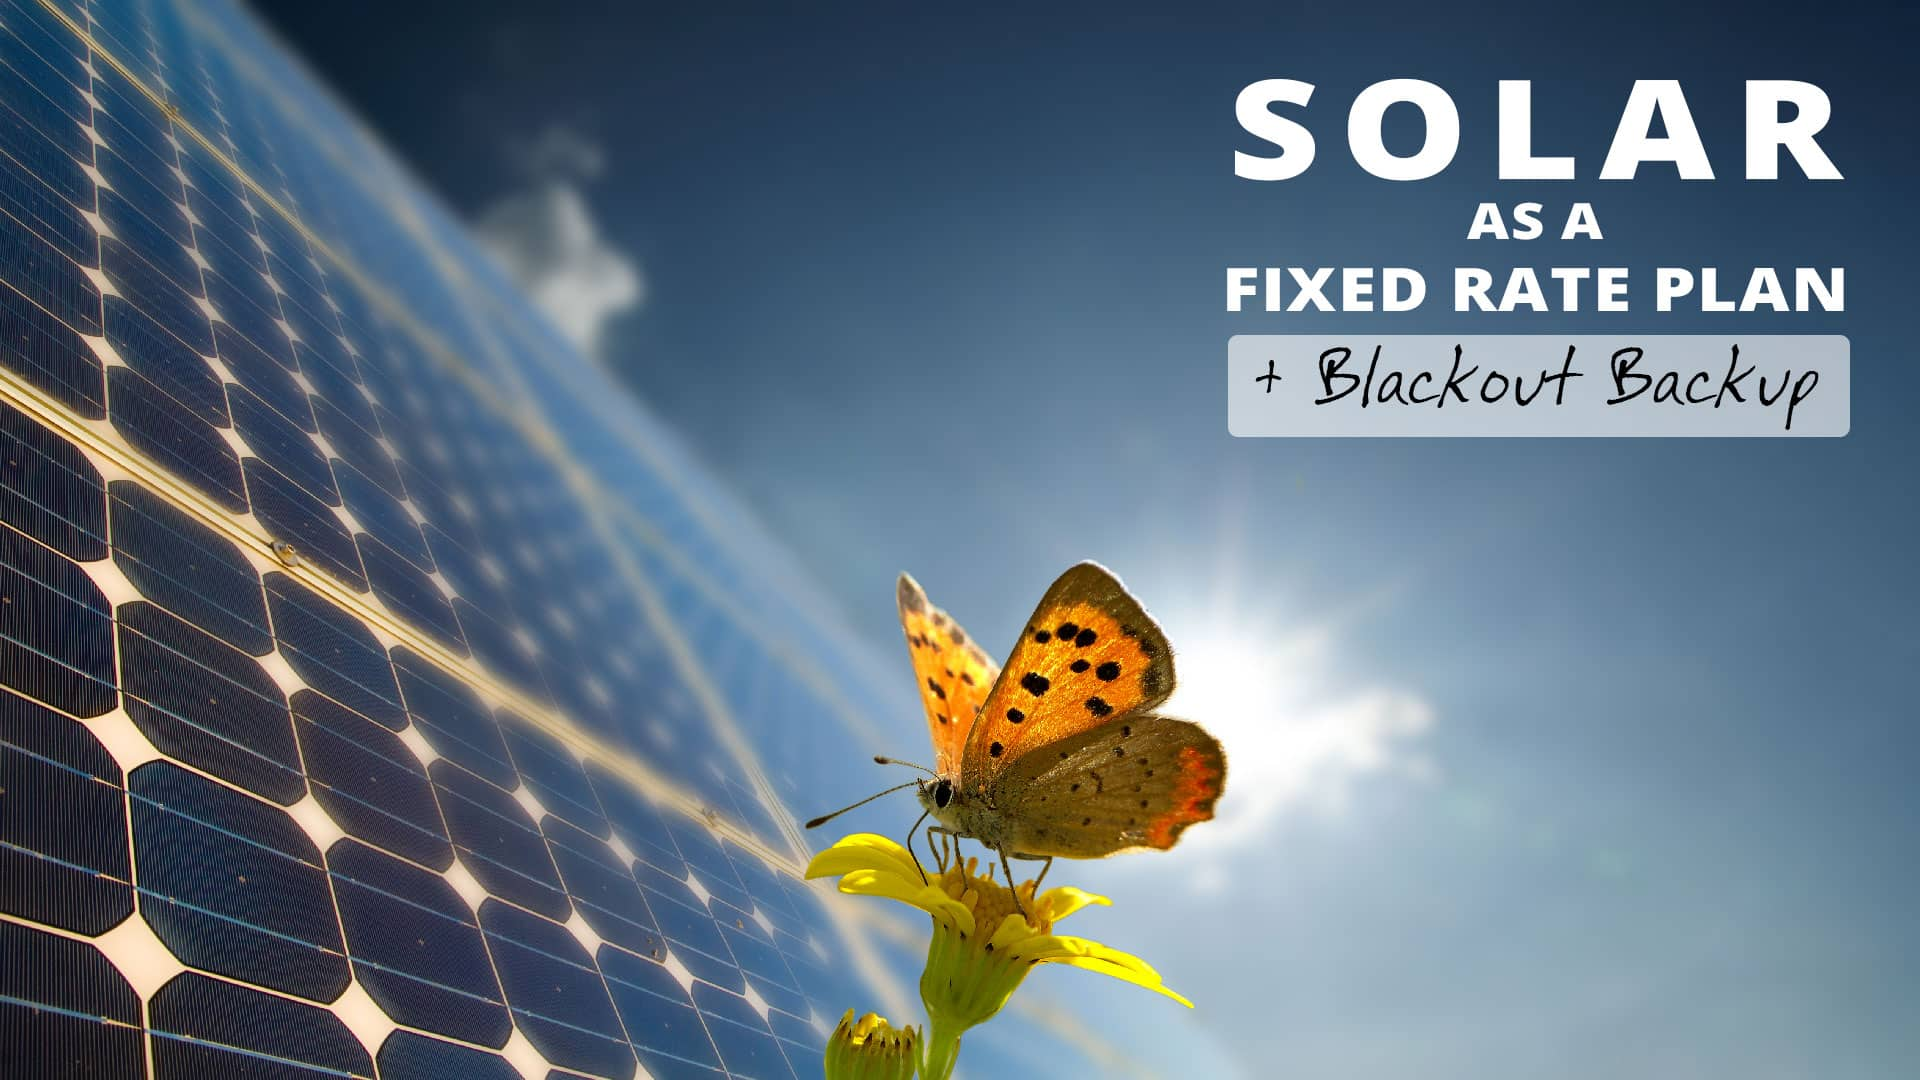 Solar as a Fixed Rate Plan